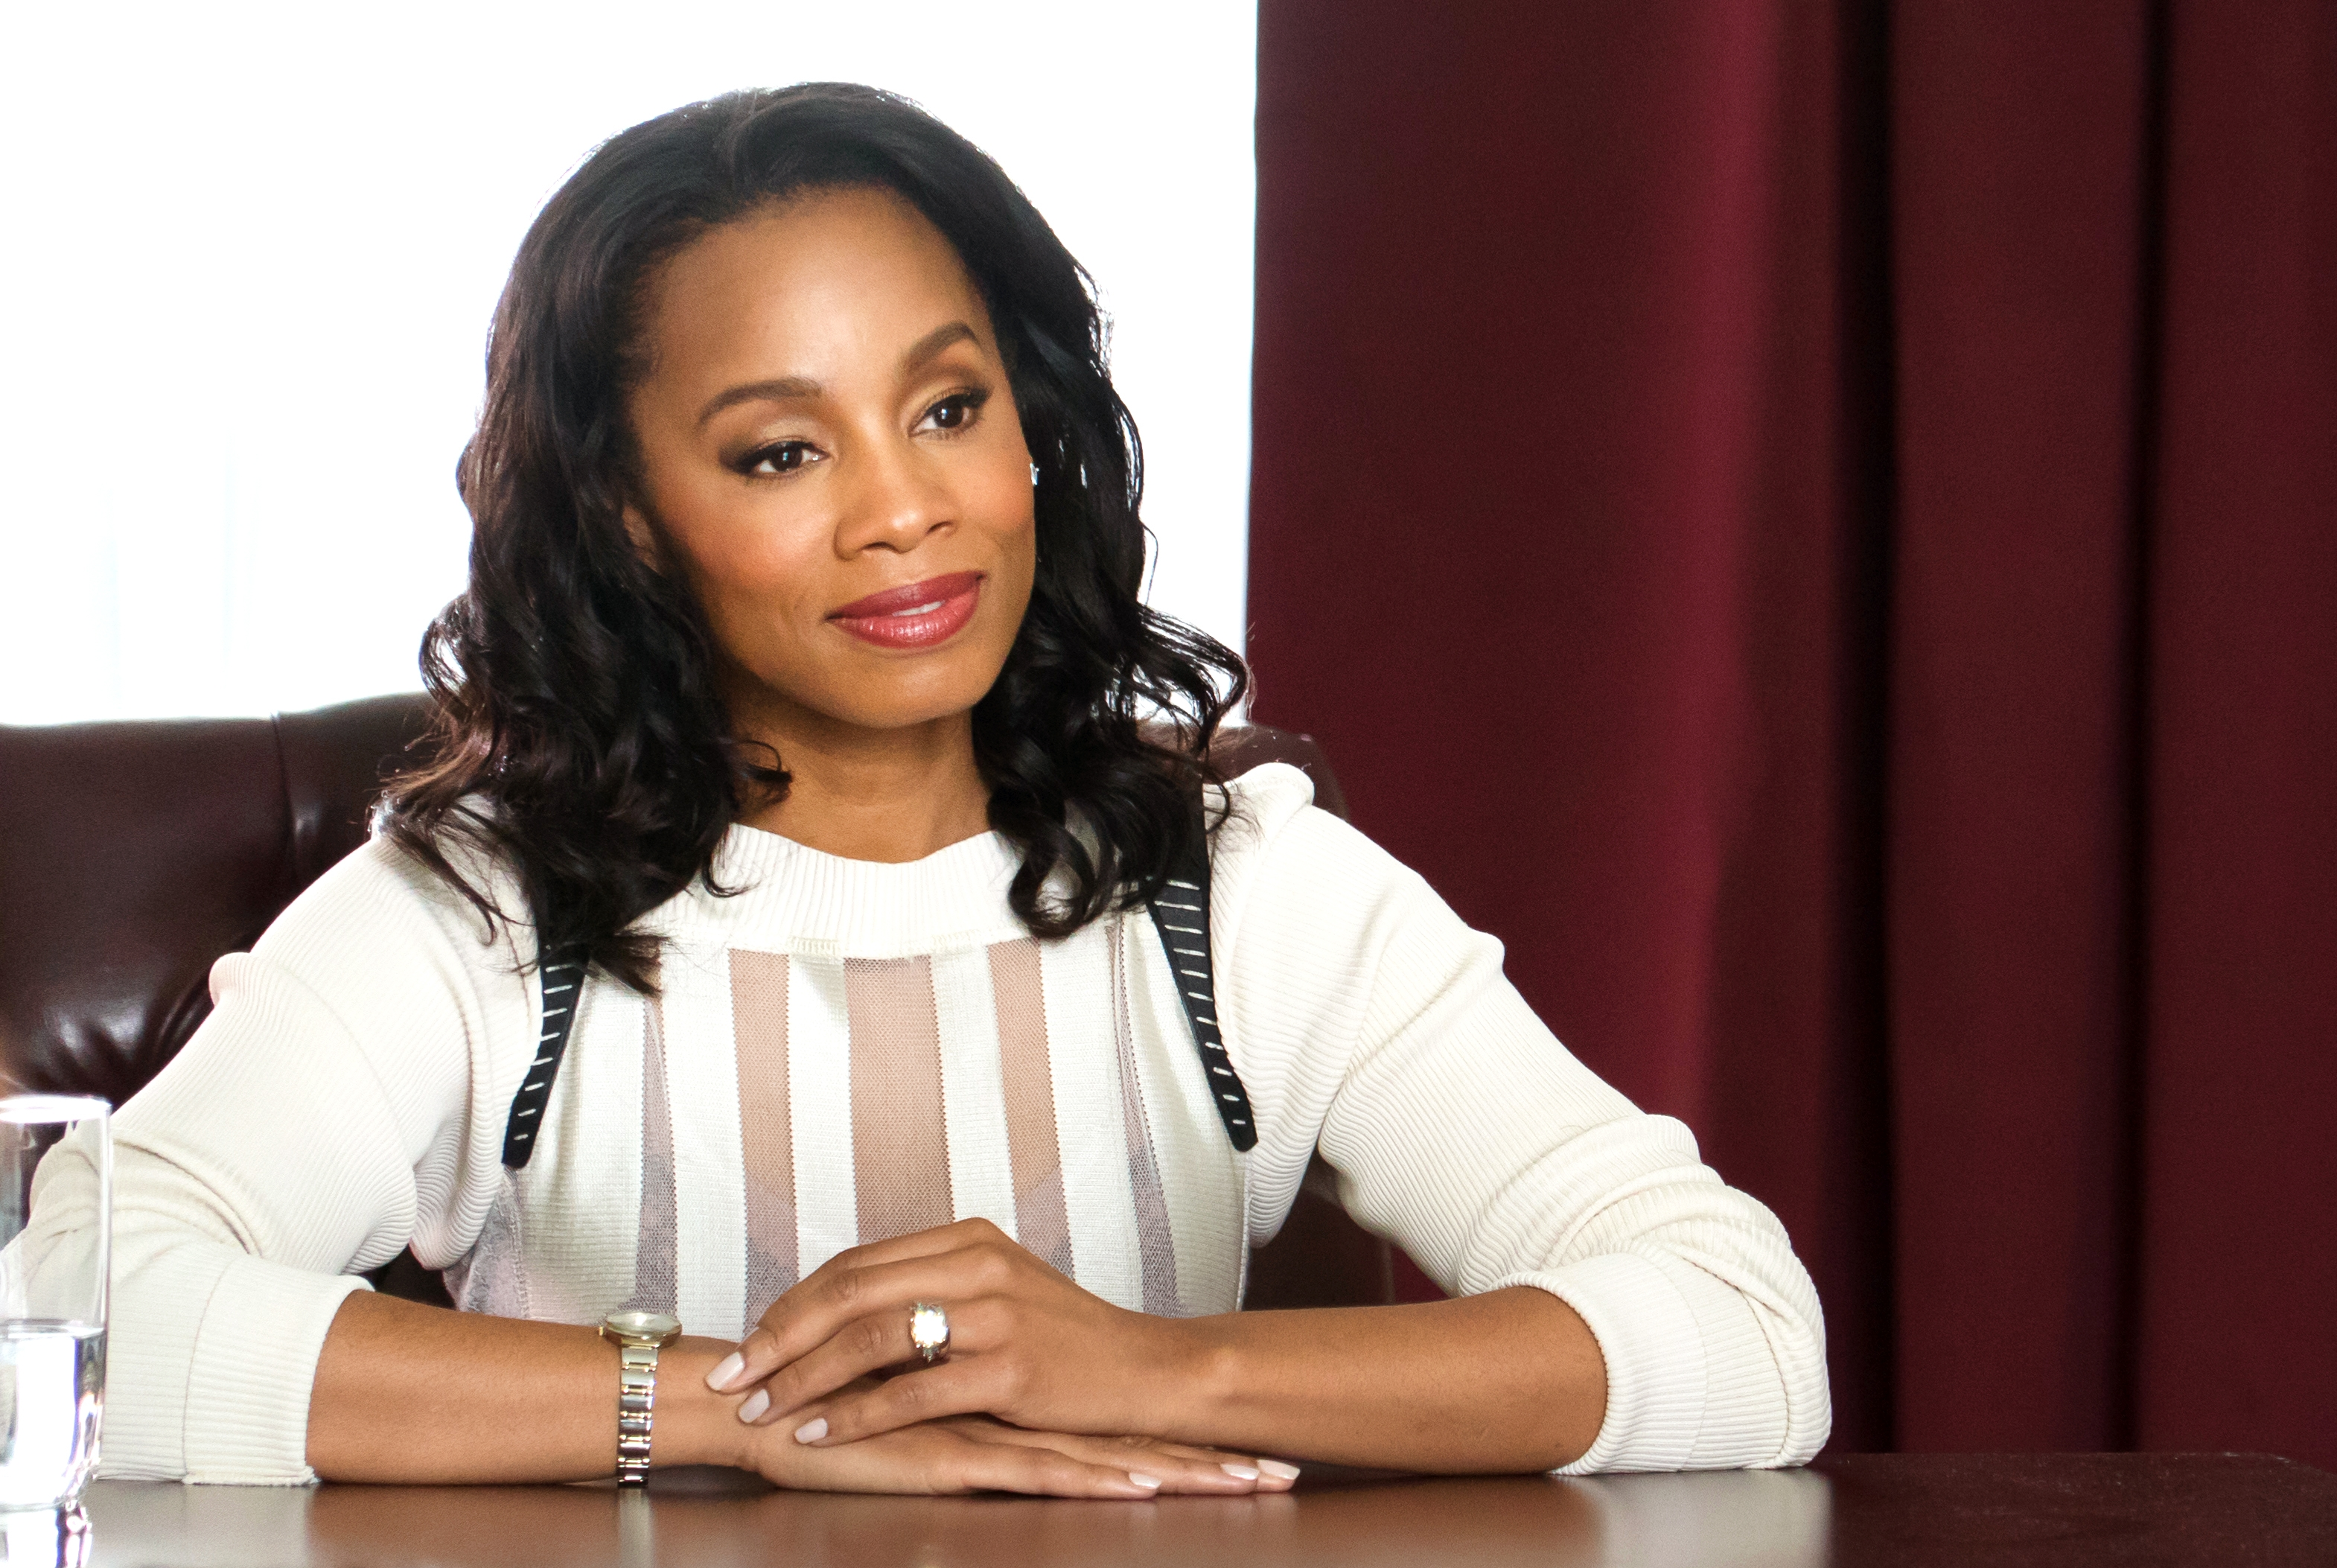 ANIKA NONI ROSE AS DR. EVA FLETCHER